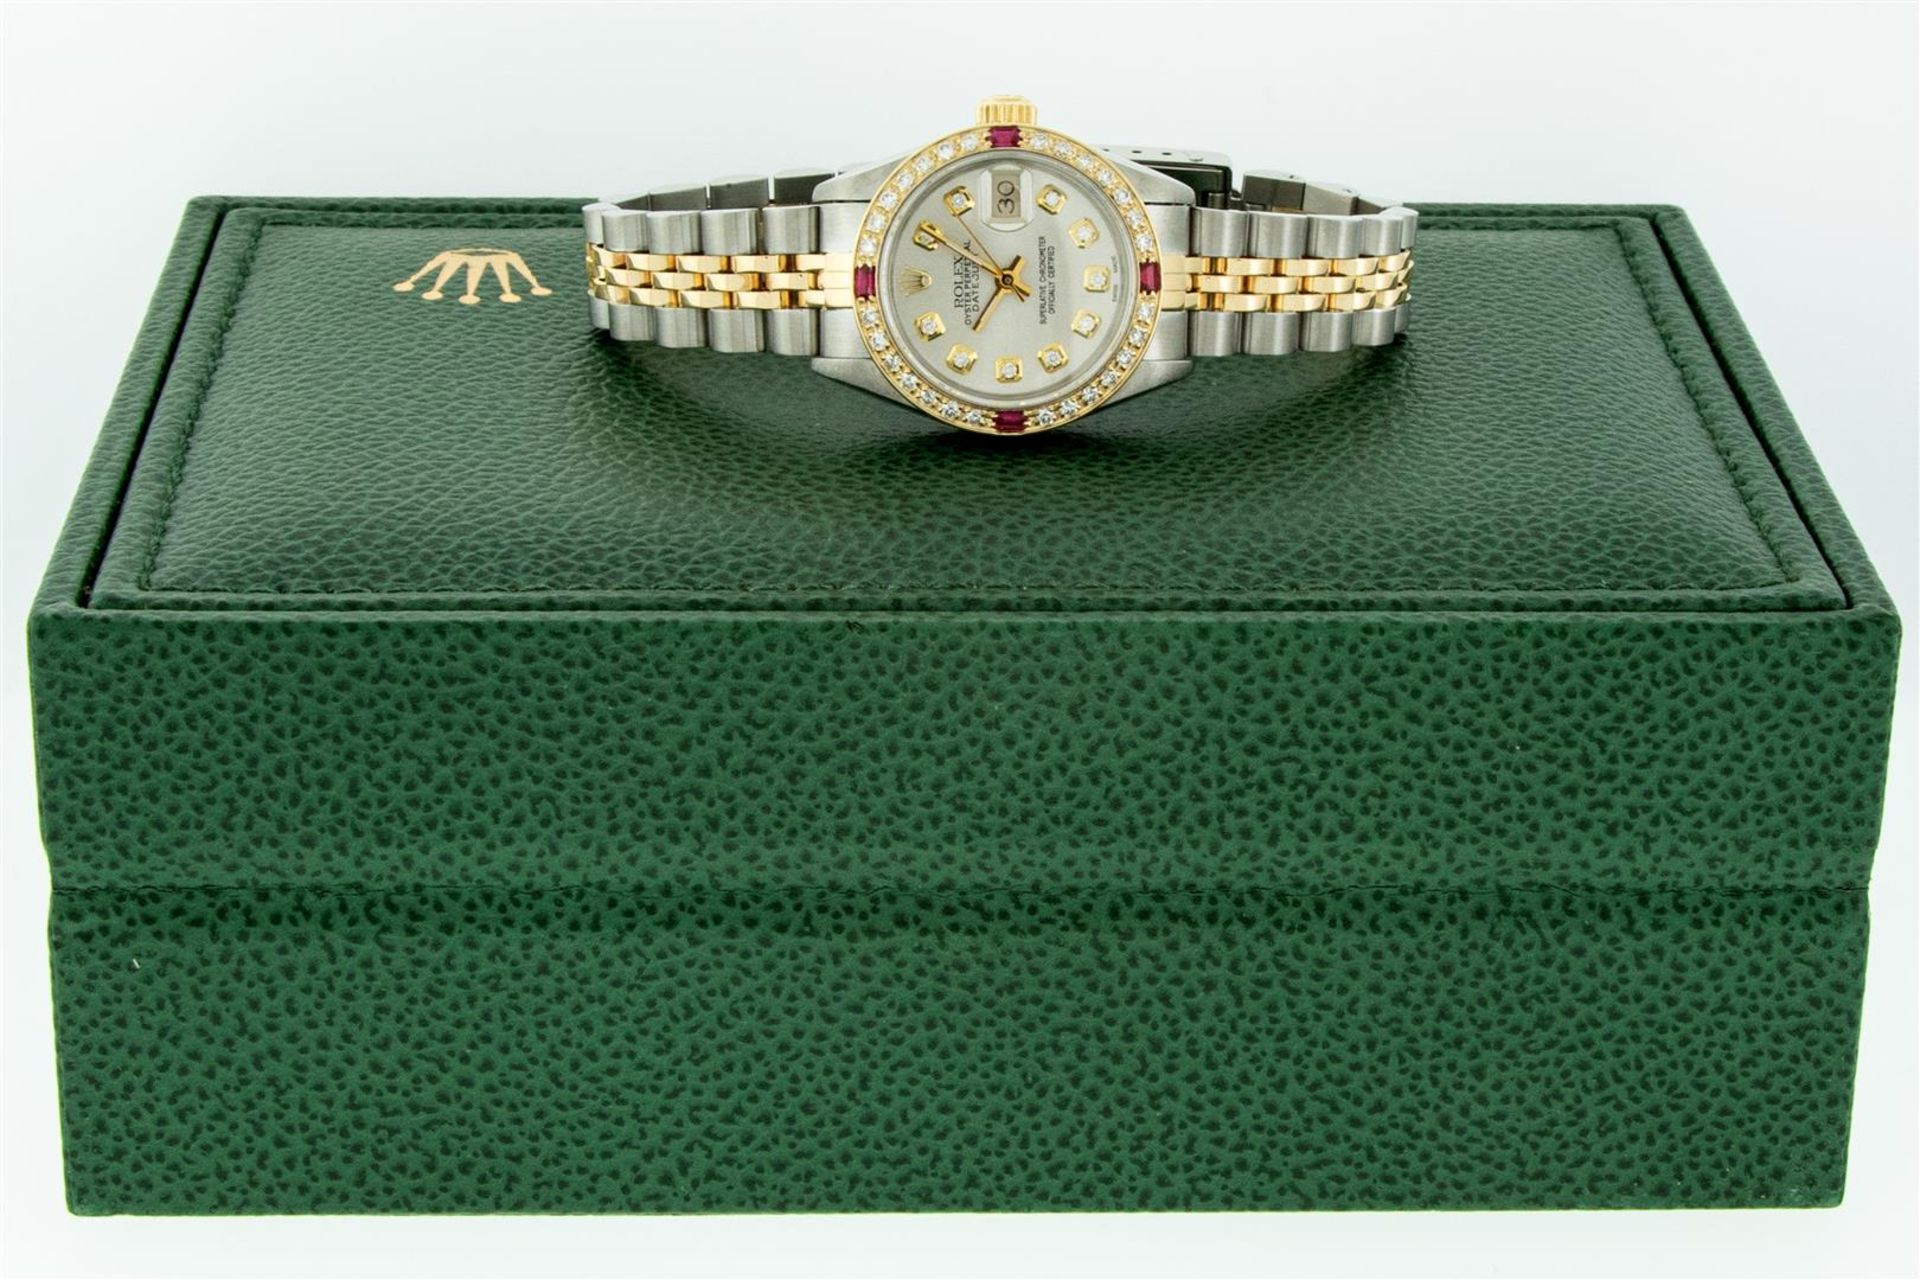 Rolex Ladies 2 Tone Silver Diamond & Ruby Oyster Perpetual Datejust Wristwatch - Image 5 of 9